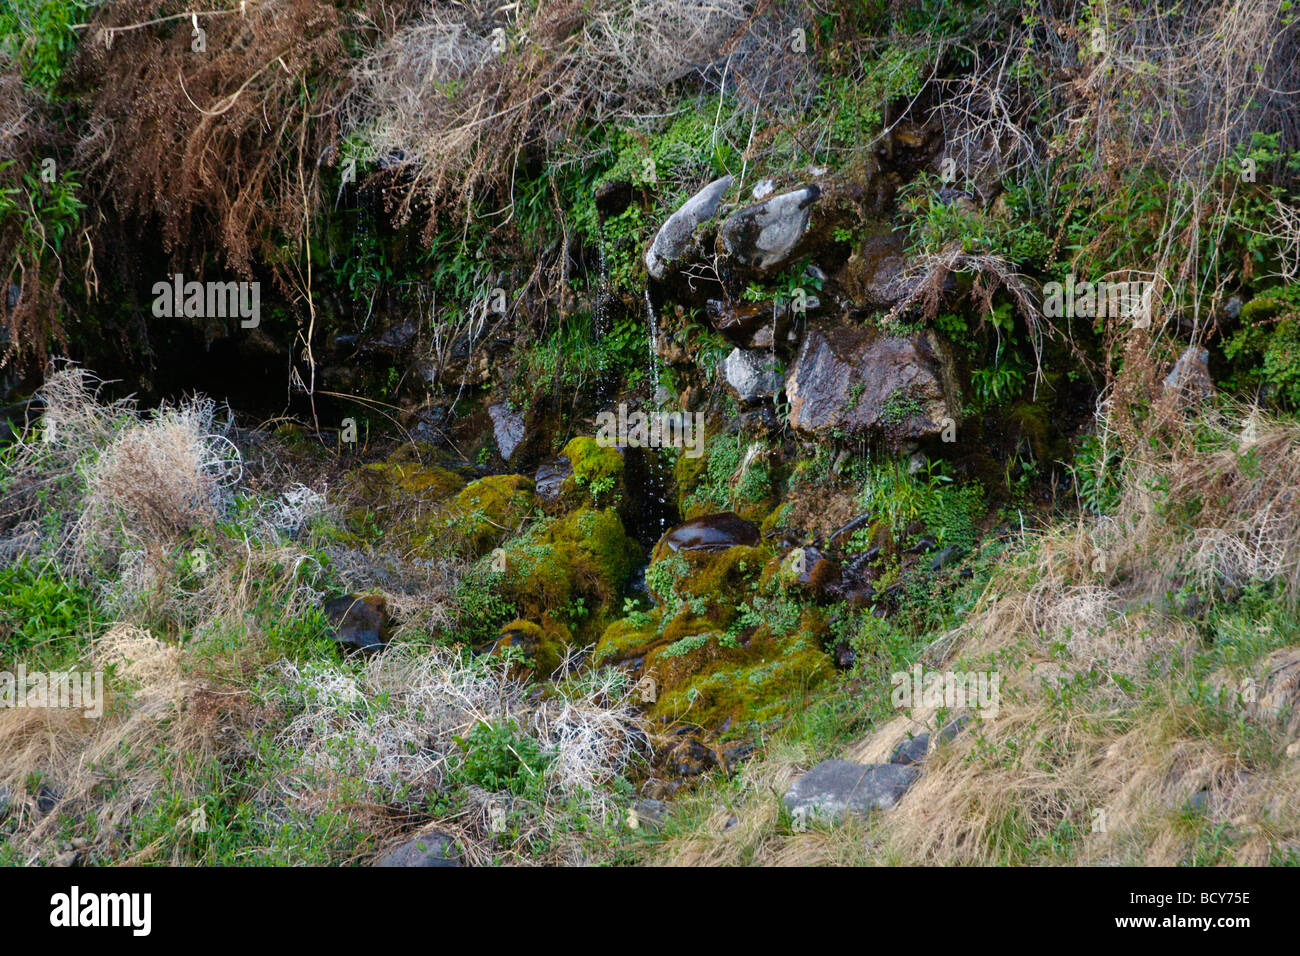 A NATURAL SPRING seeps from volcanic rock along the wild and scenic OWYHEE RIVER EASTERN OREGON - Stock Image